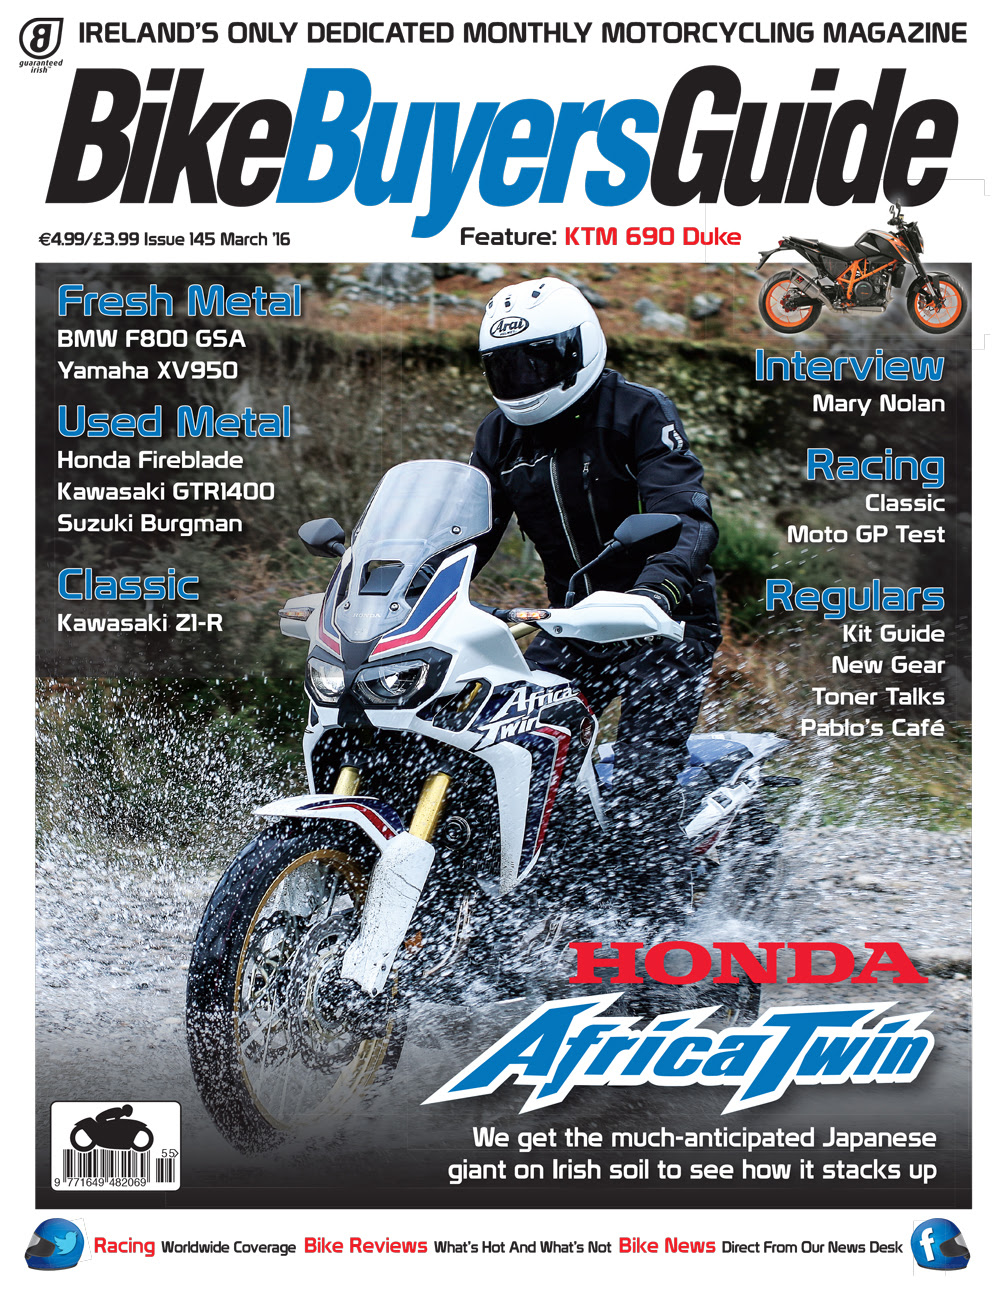 Bike Buyers Guide, March 2016